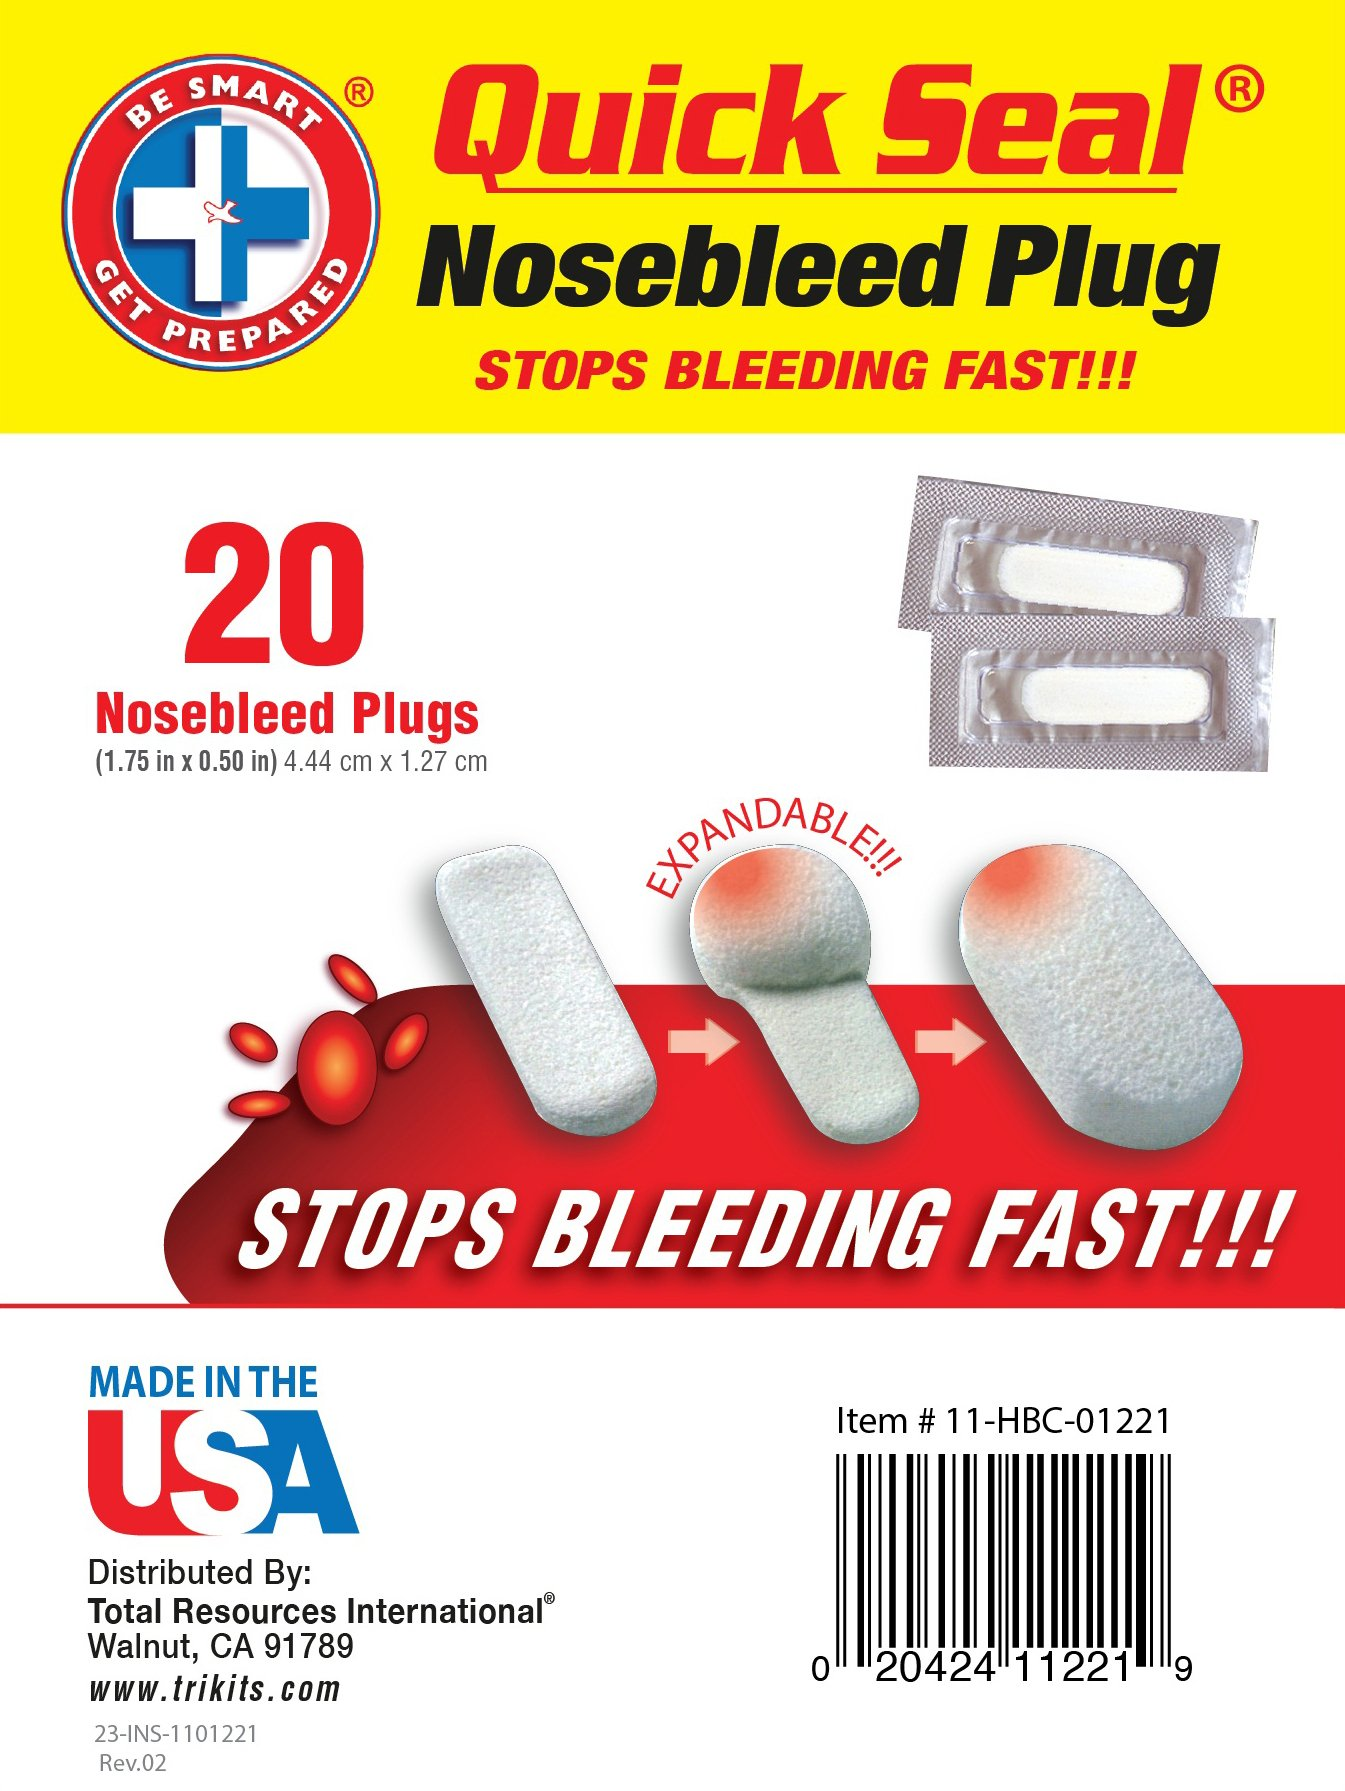 Be Smart Get Prepared Quick Seal Nosebleed Plugs. Stops Bleeding Fast, Non-Stick and Easy to Remove. (20 Plugs Included).